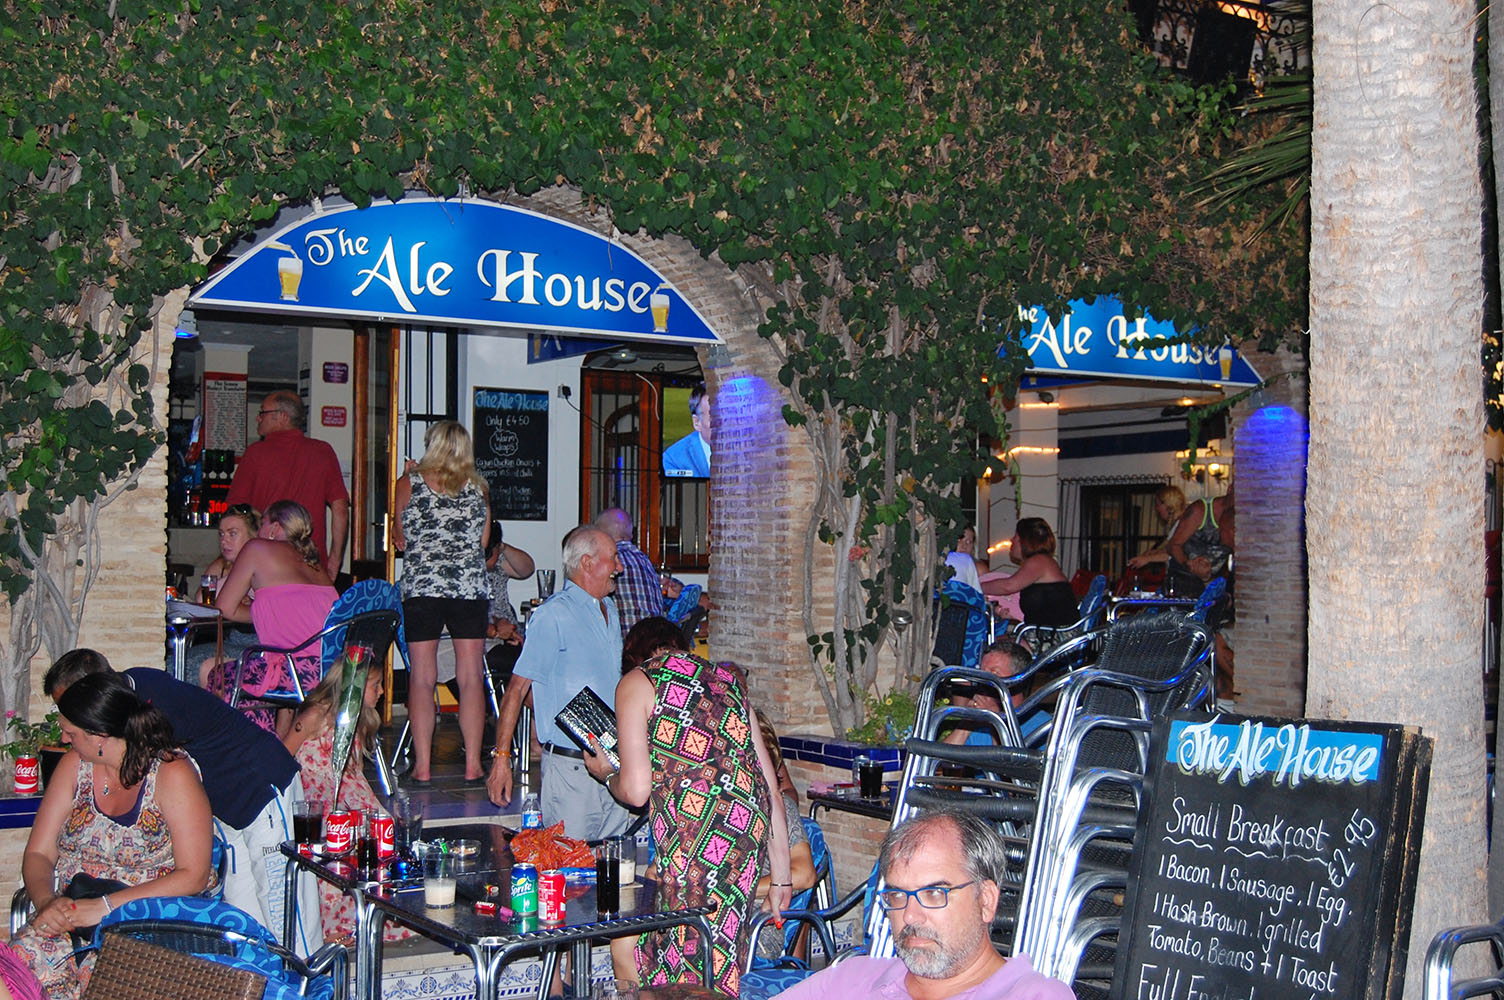 The Ale House Villamartin Plaza